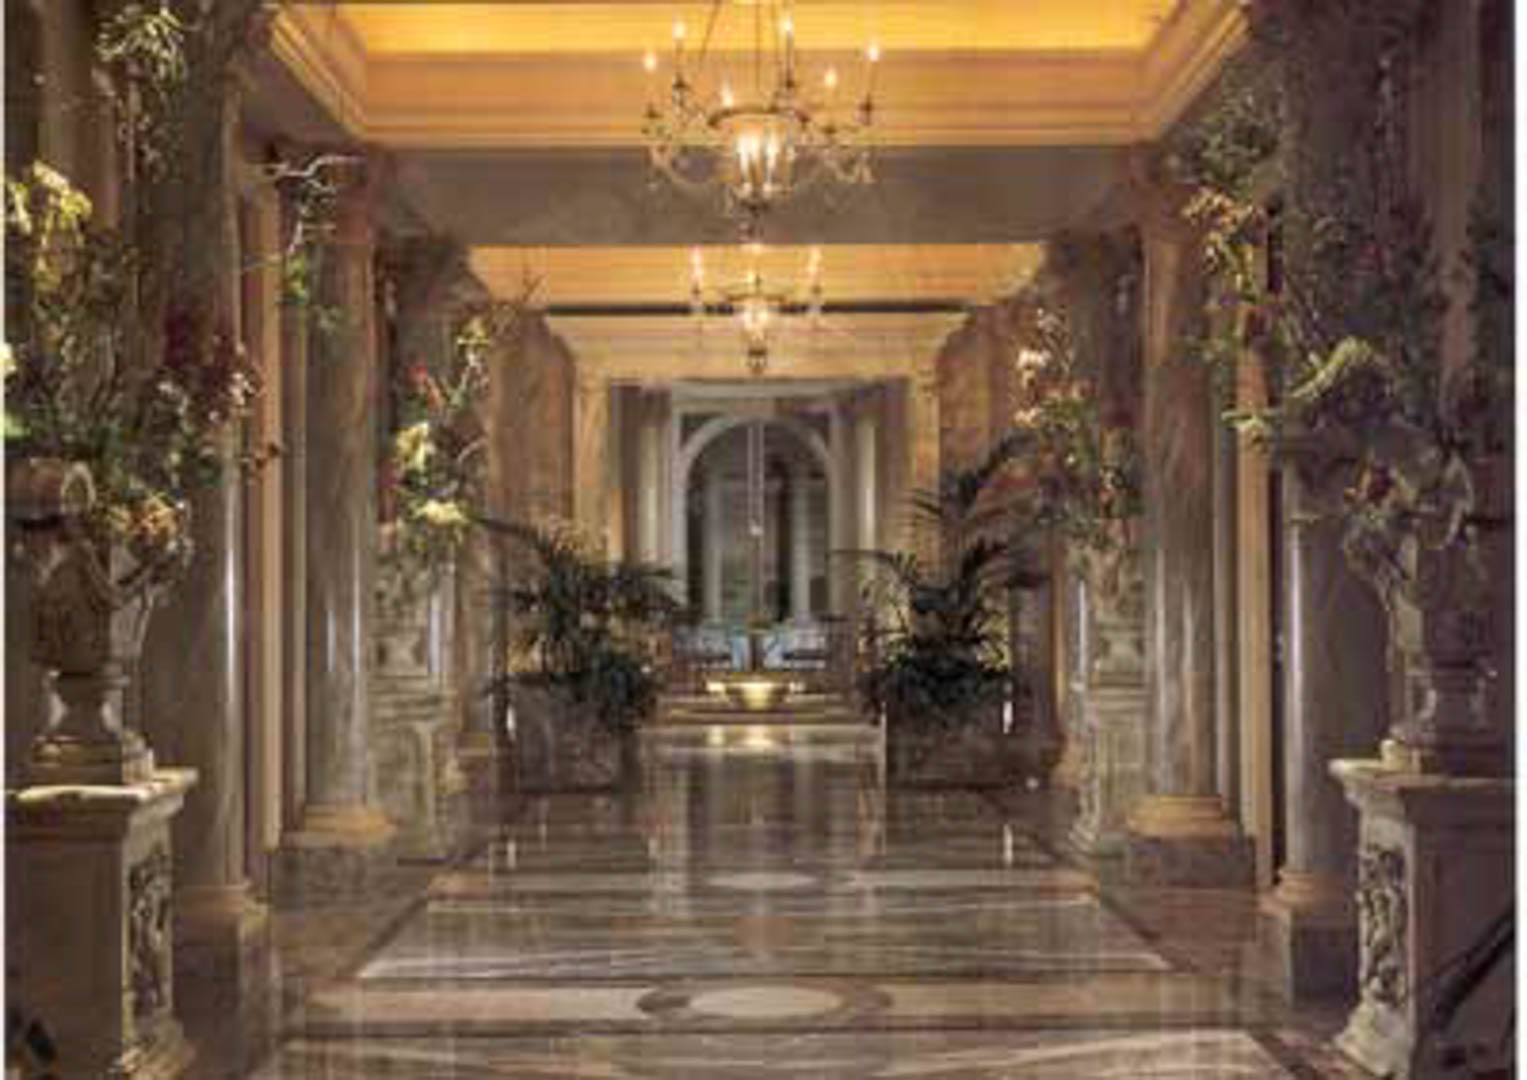 Project:   Caesars Palace Hotel   Location:  Las Vegas, Nevada   Description:  Interior Paving Only the very affluent get to see this corridor in one of the most luxurious suites in Las Vegas. Notice the use of water jet design and 'book matched' veining in these marble floors. Over 35 different stone types were imported and installed by Carrara on this project.